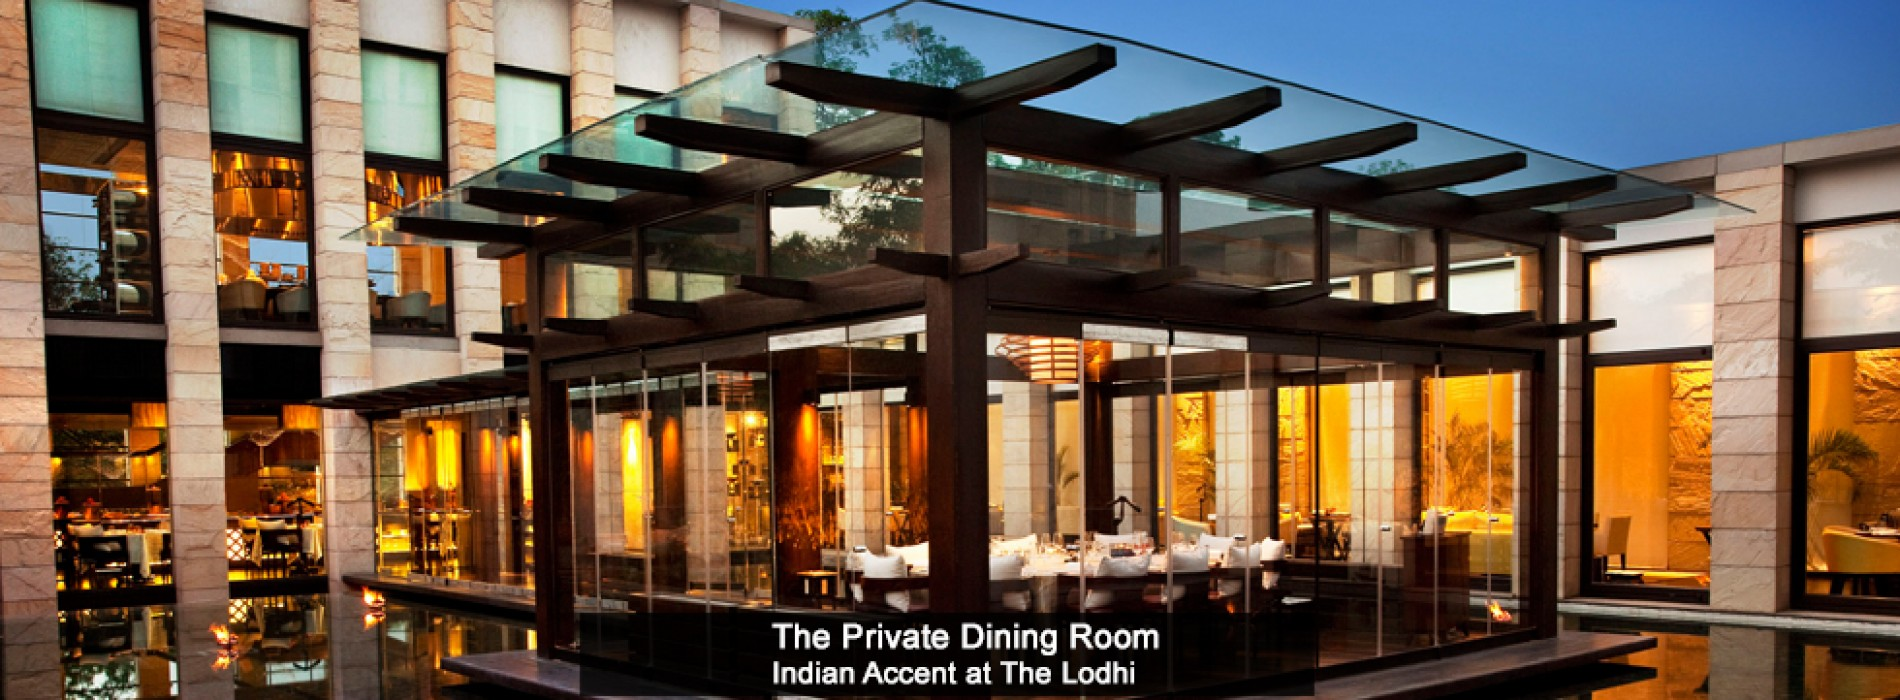 Indian Accent at The Manor, New Delhi will open at The Lodhi end October